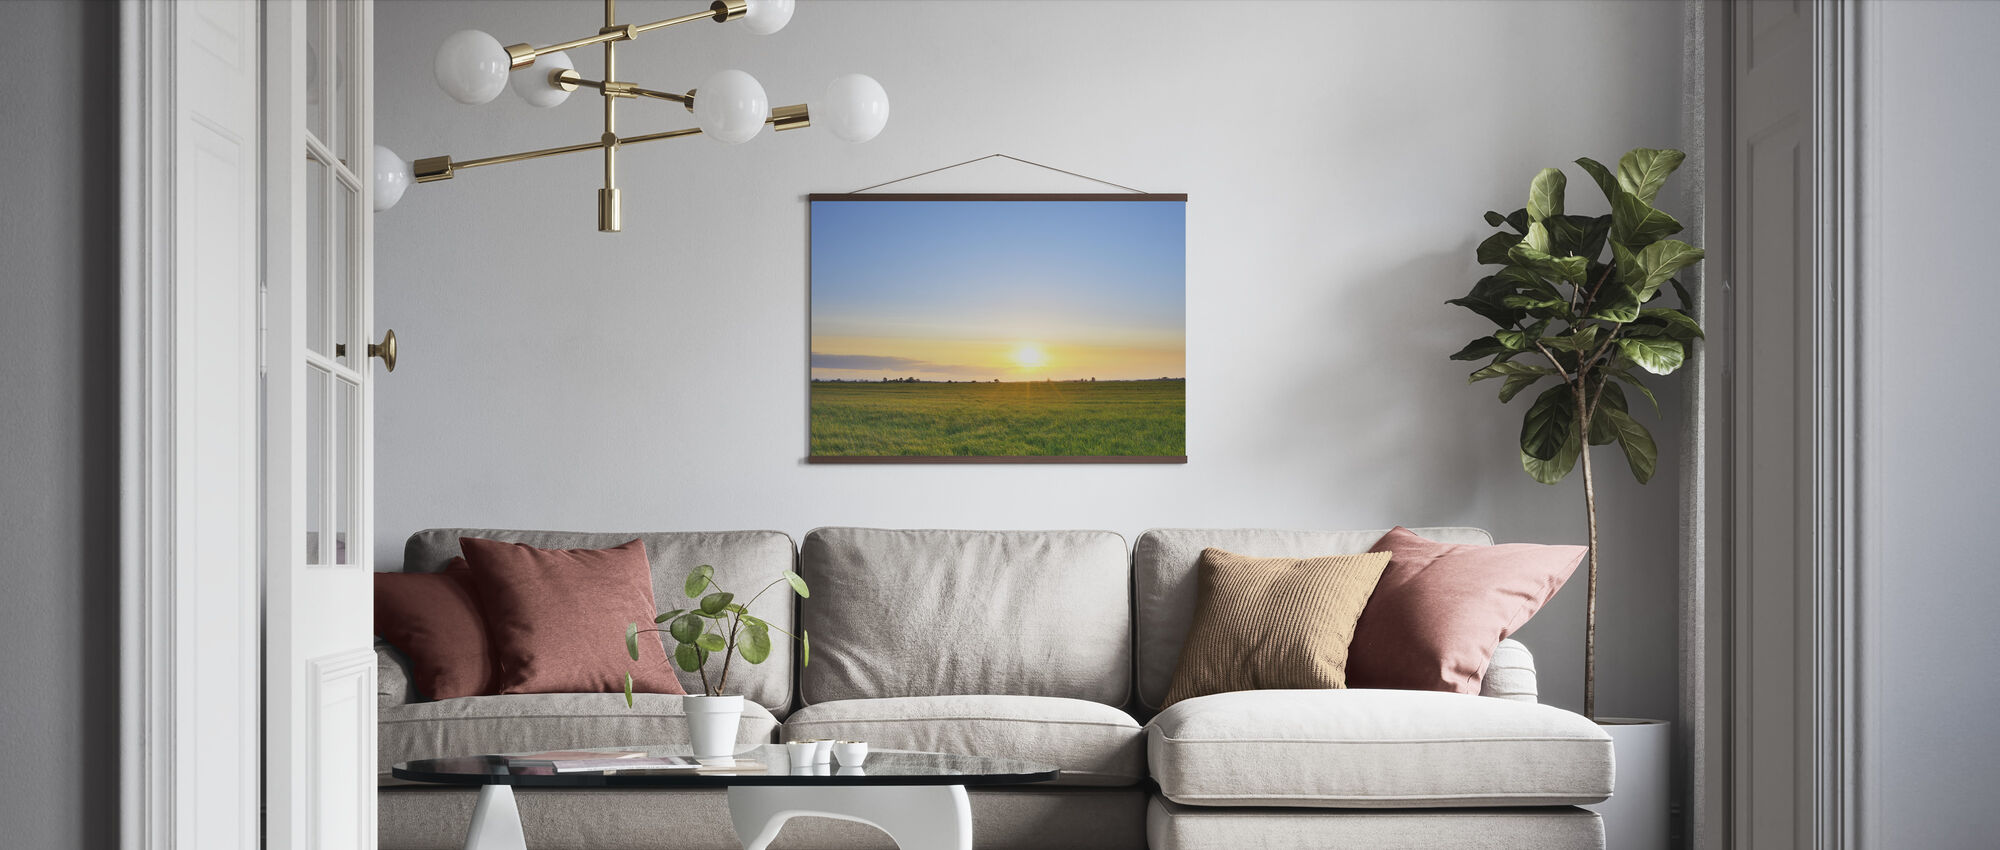 Meadow at Sunset - Poster - Living Room